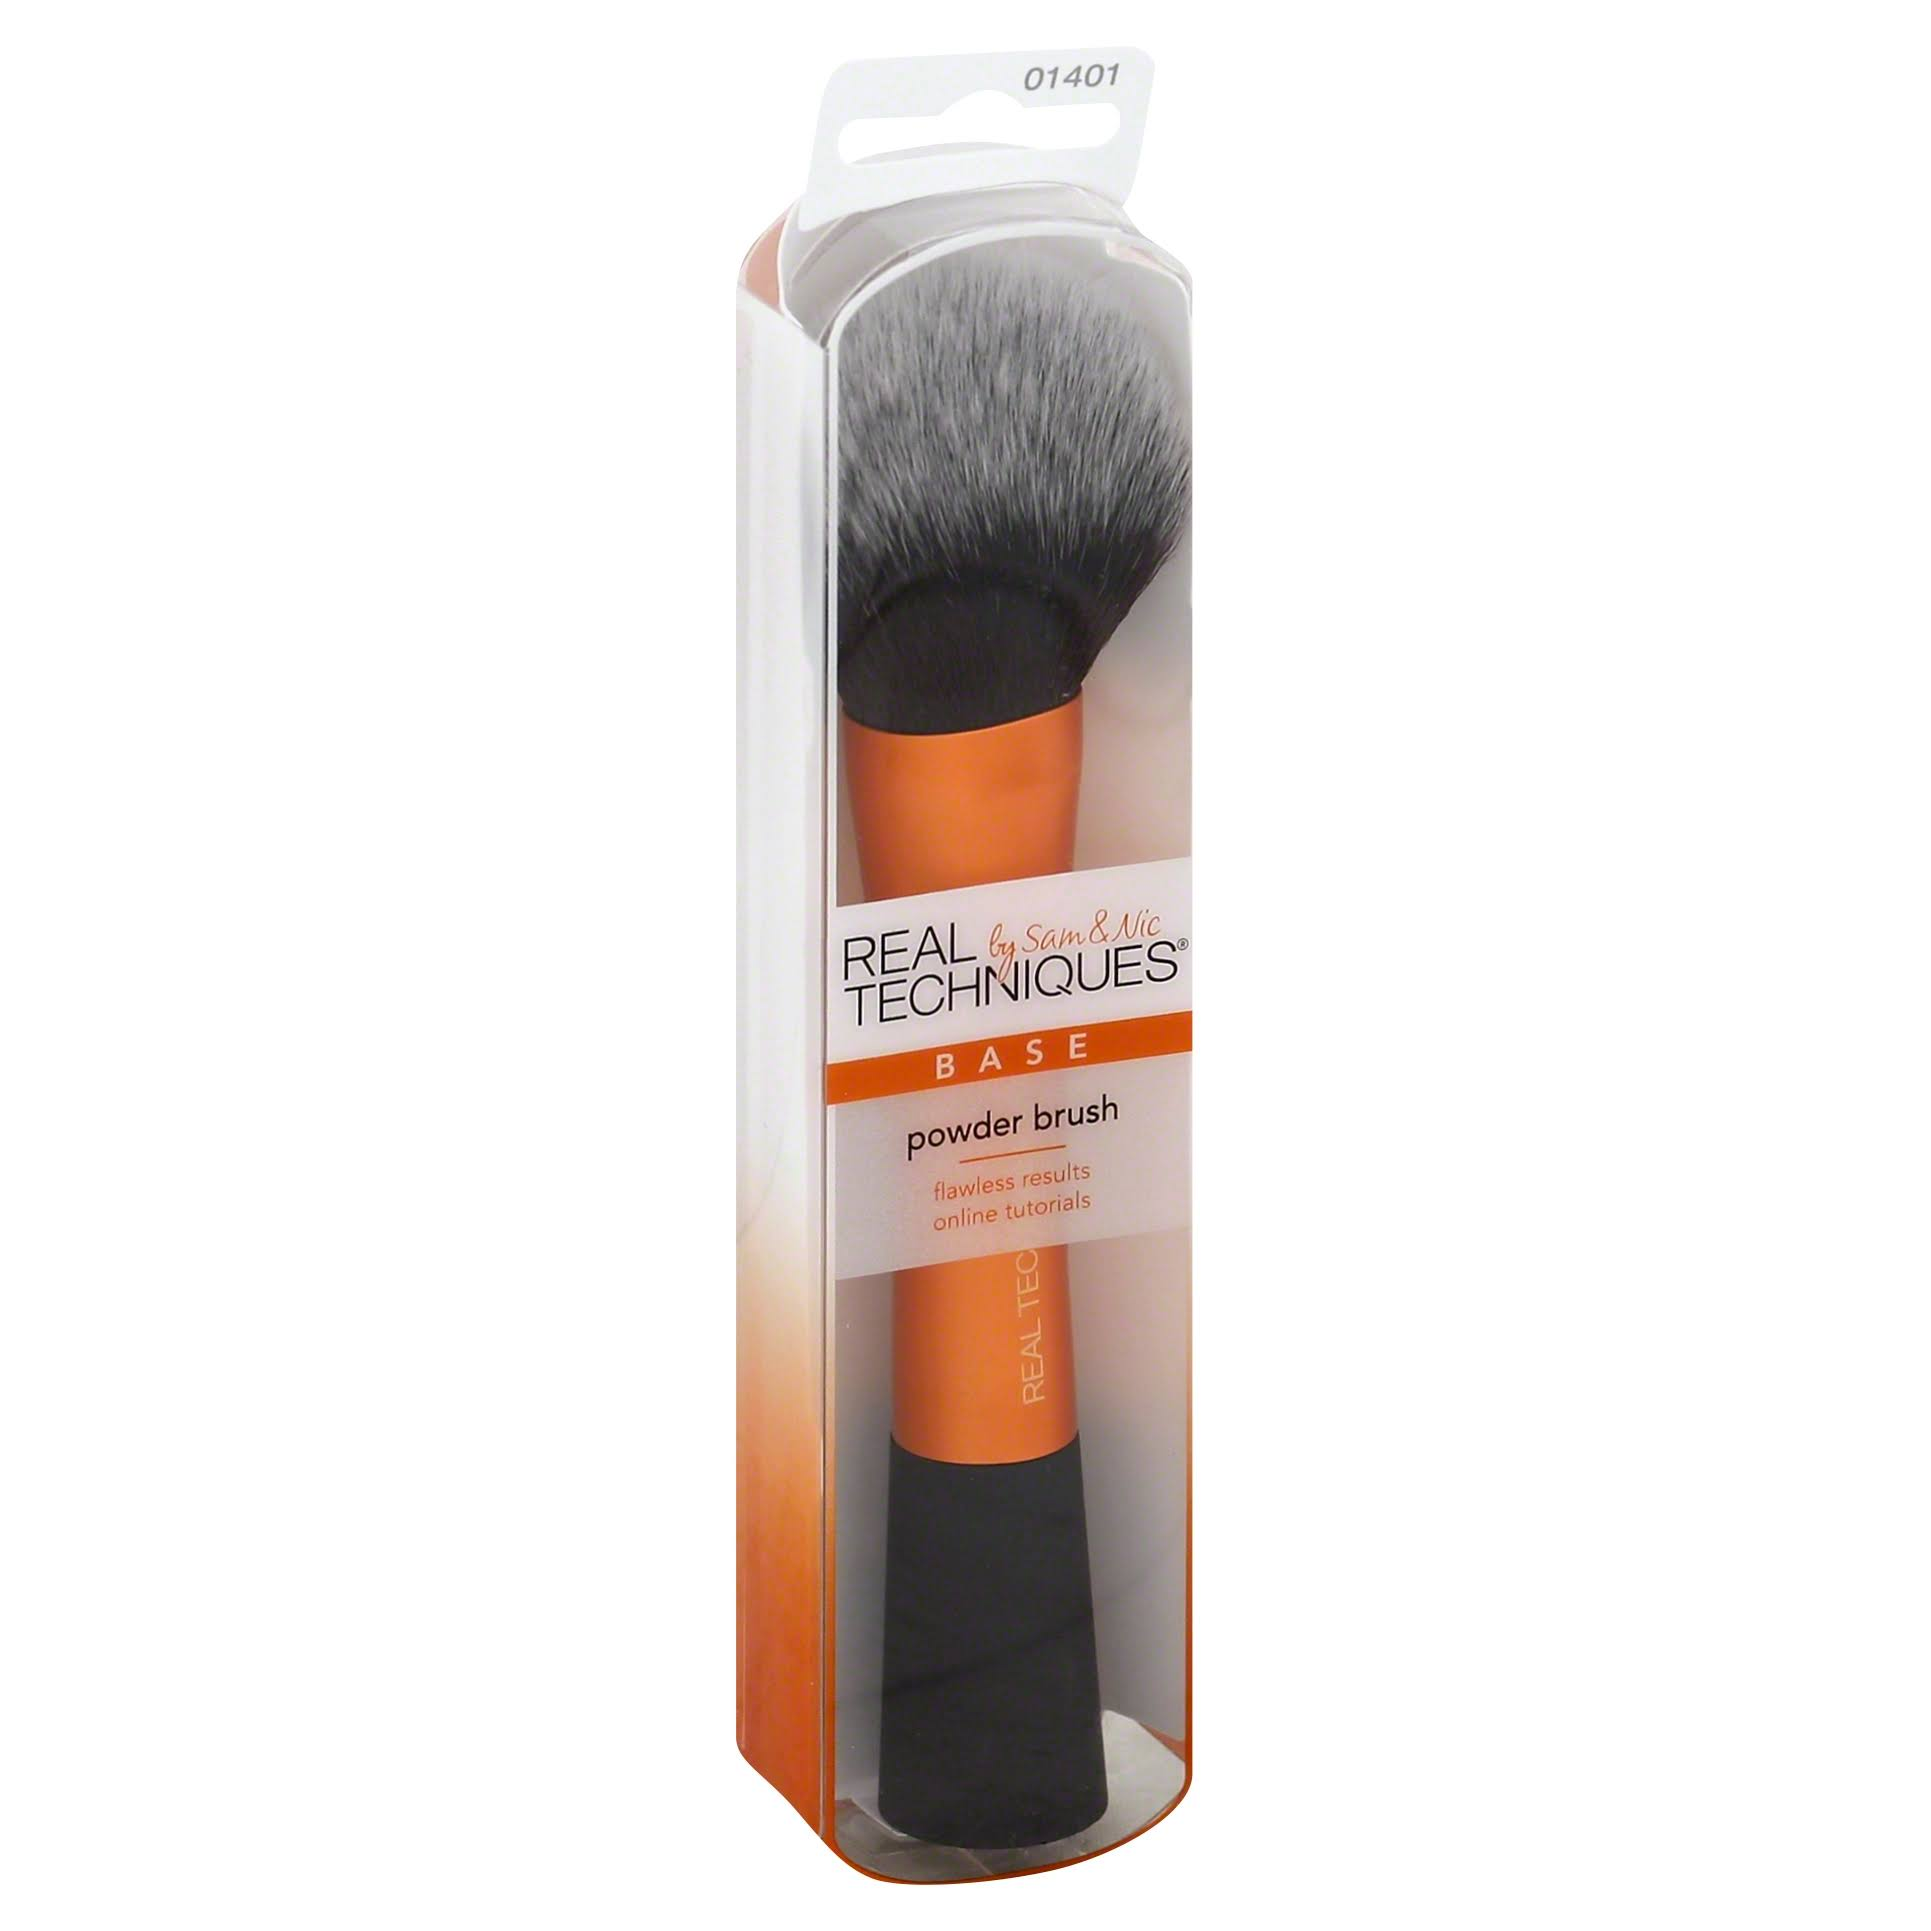 Real Techniques Powder Face Brush - Base